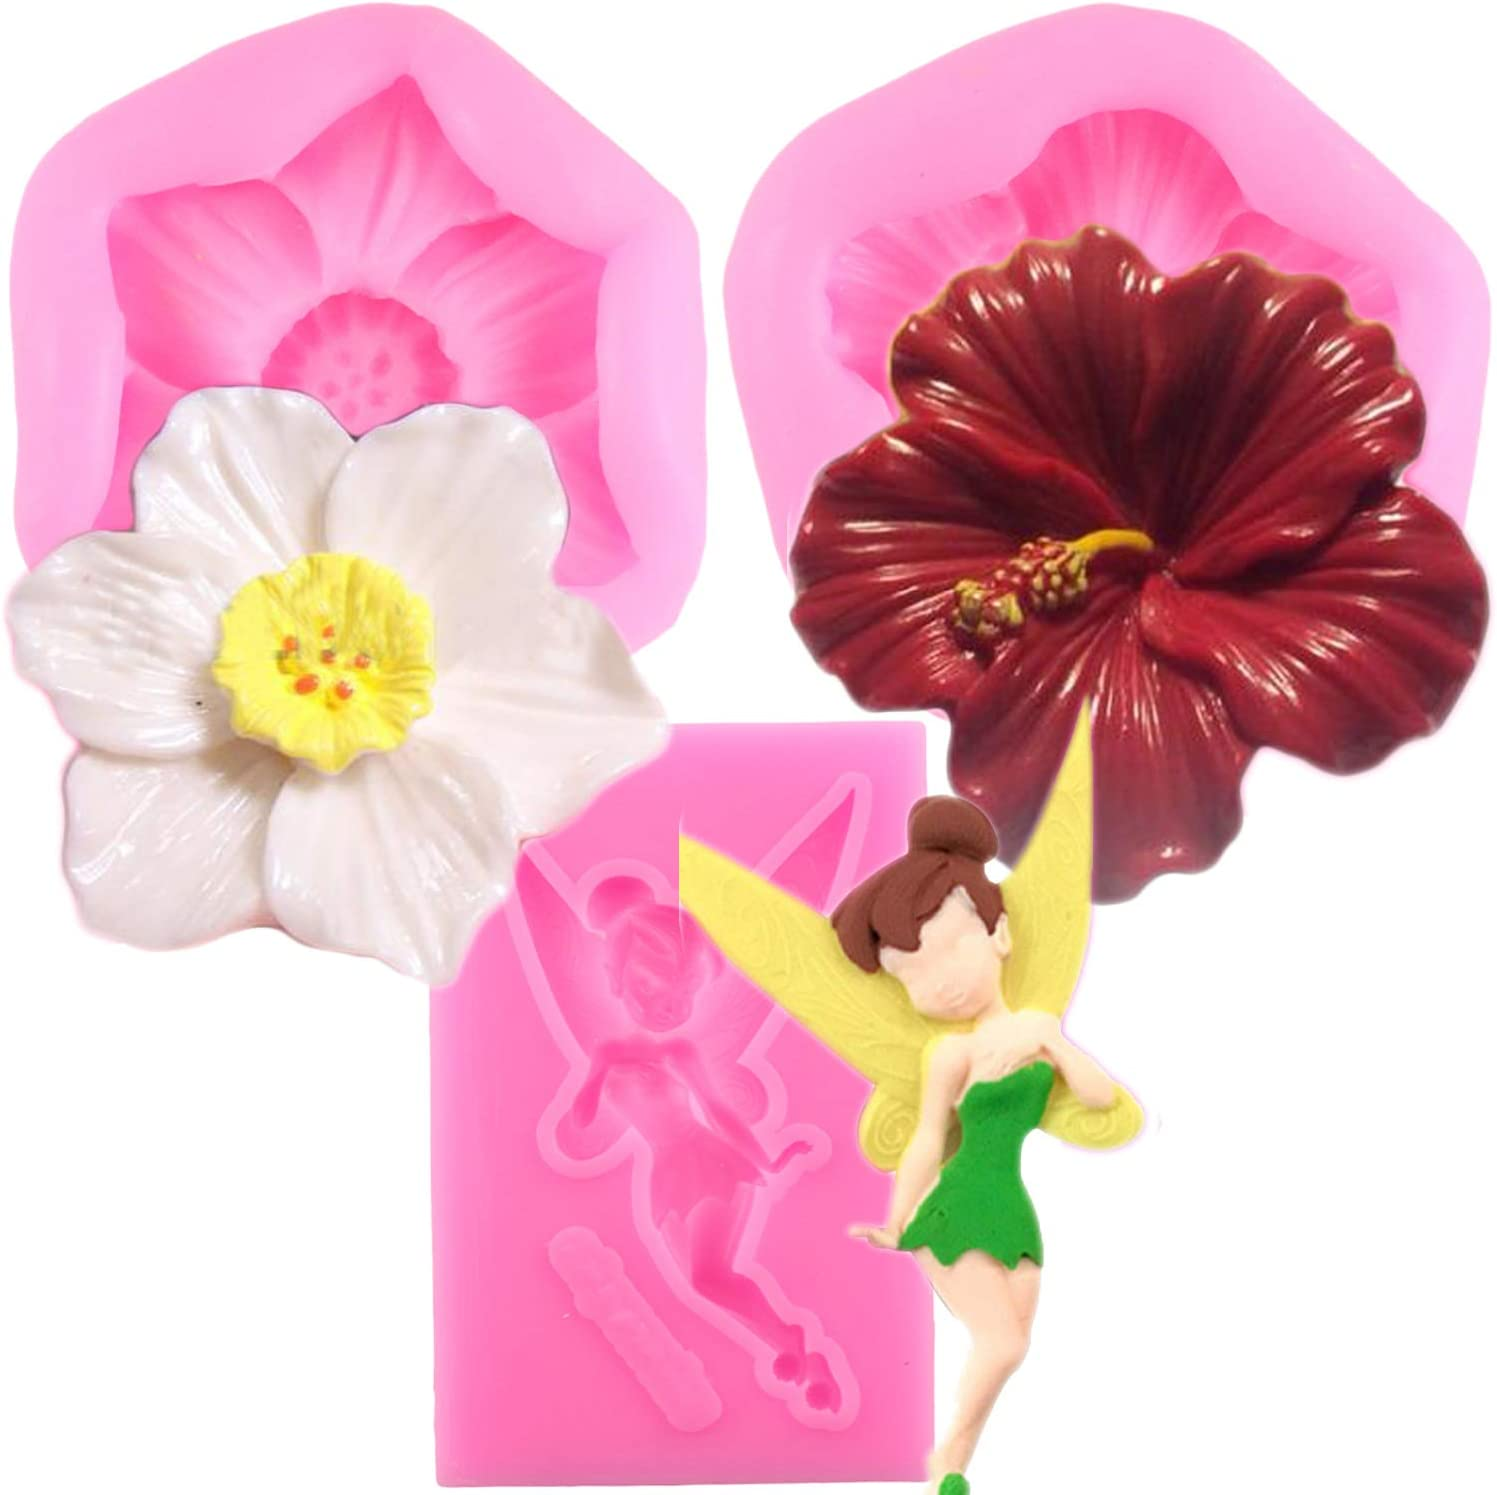 Mujiang Flower And Flower Fairy Silicone Fondant Chocolate Candy Molds